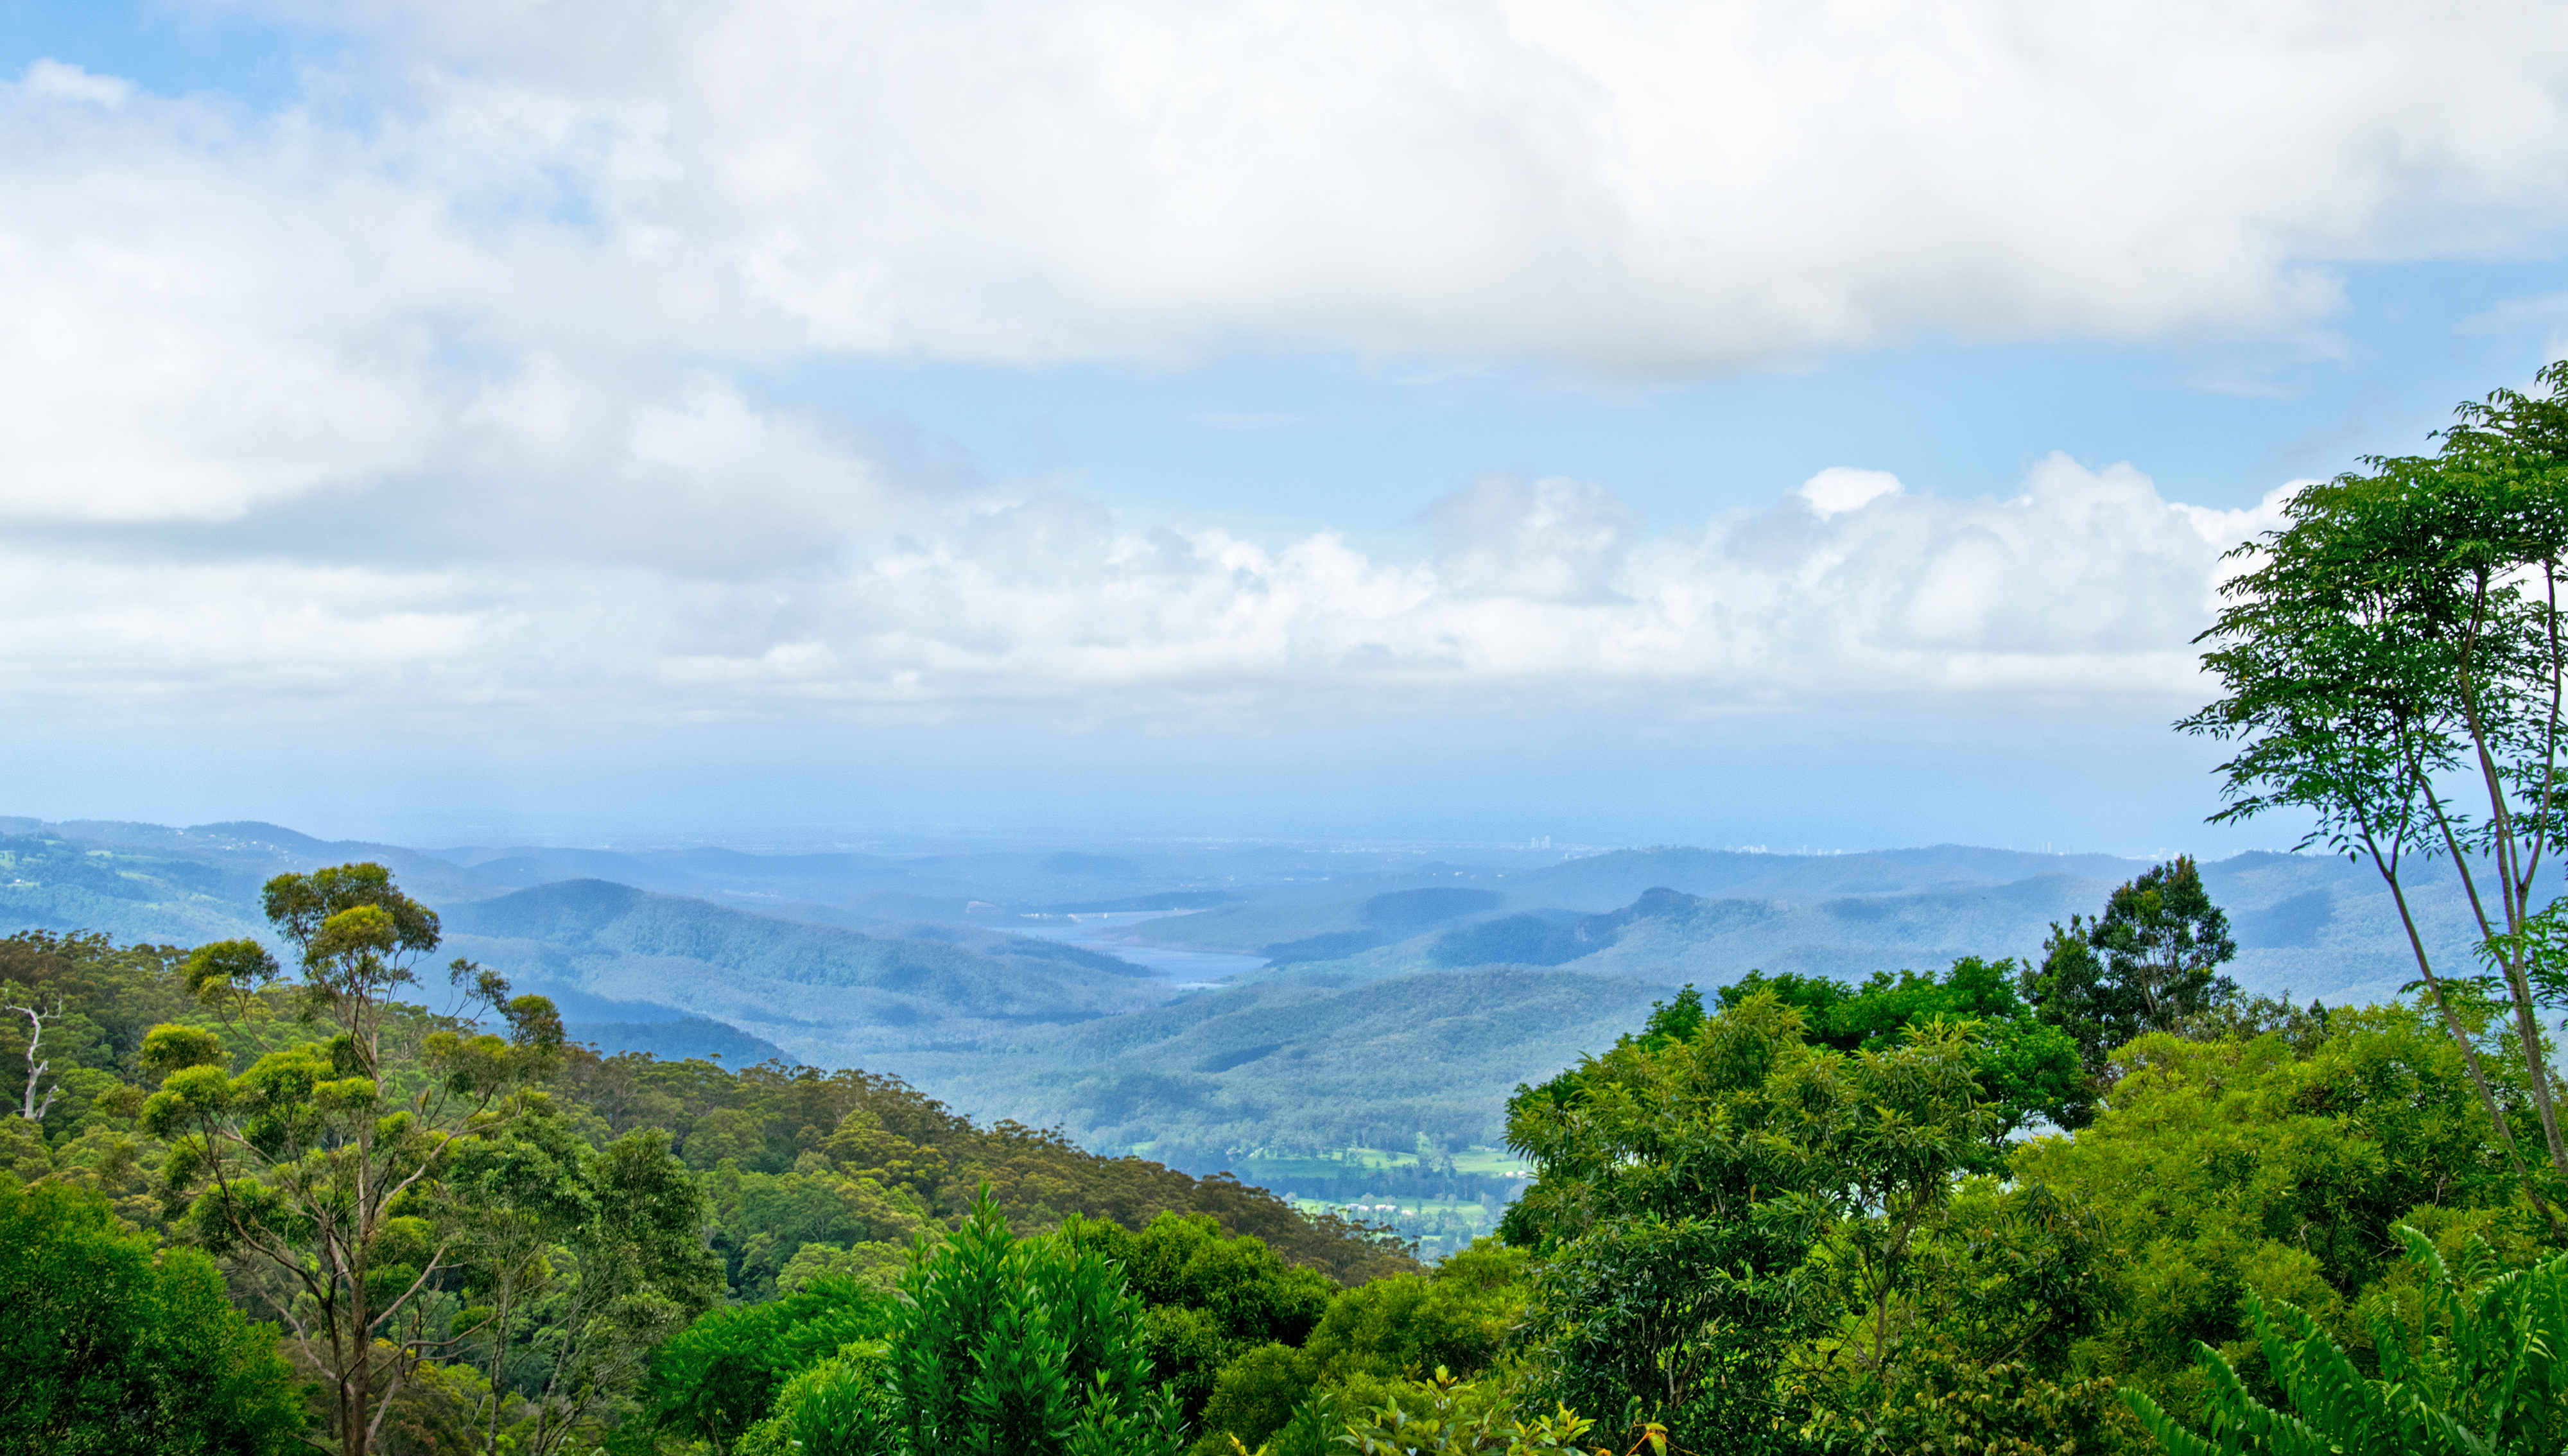 the Numinbah Valley scenic drives